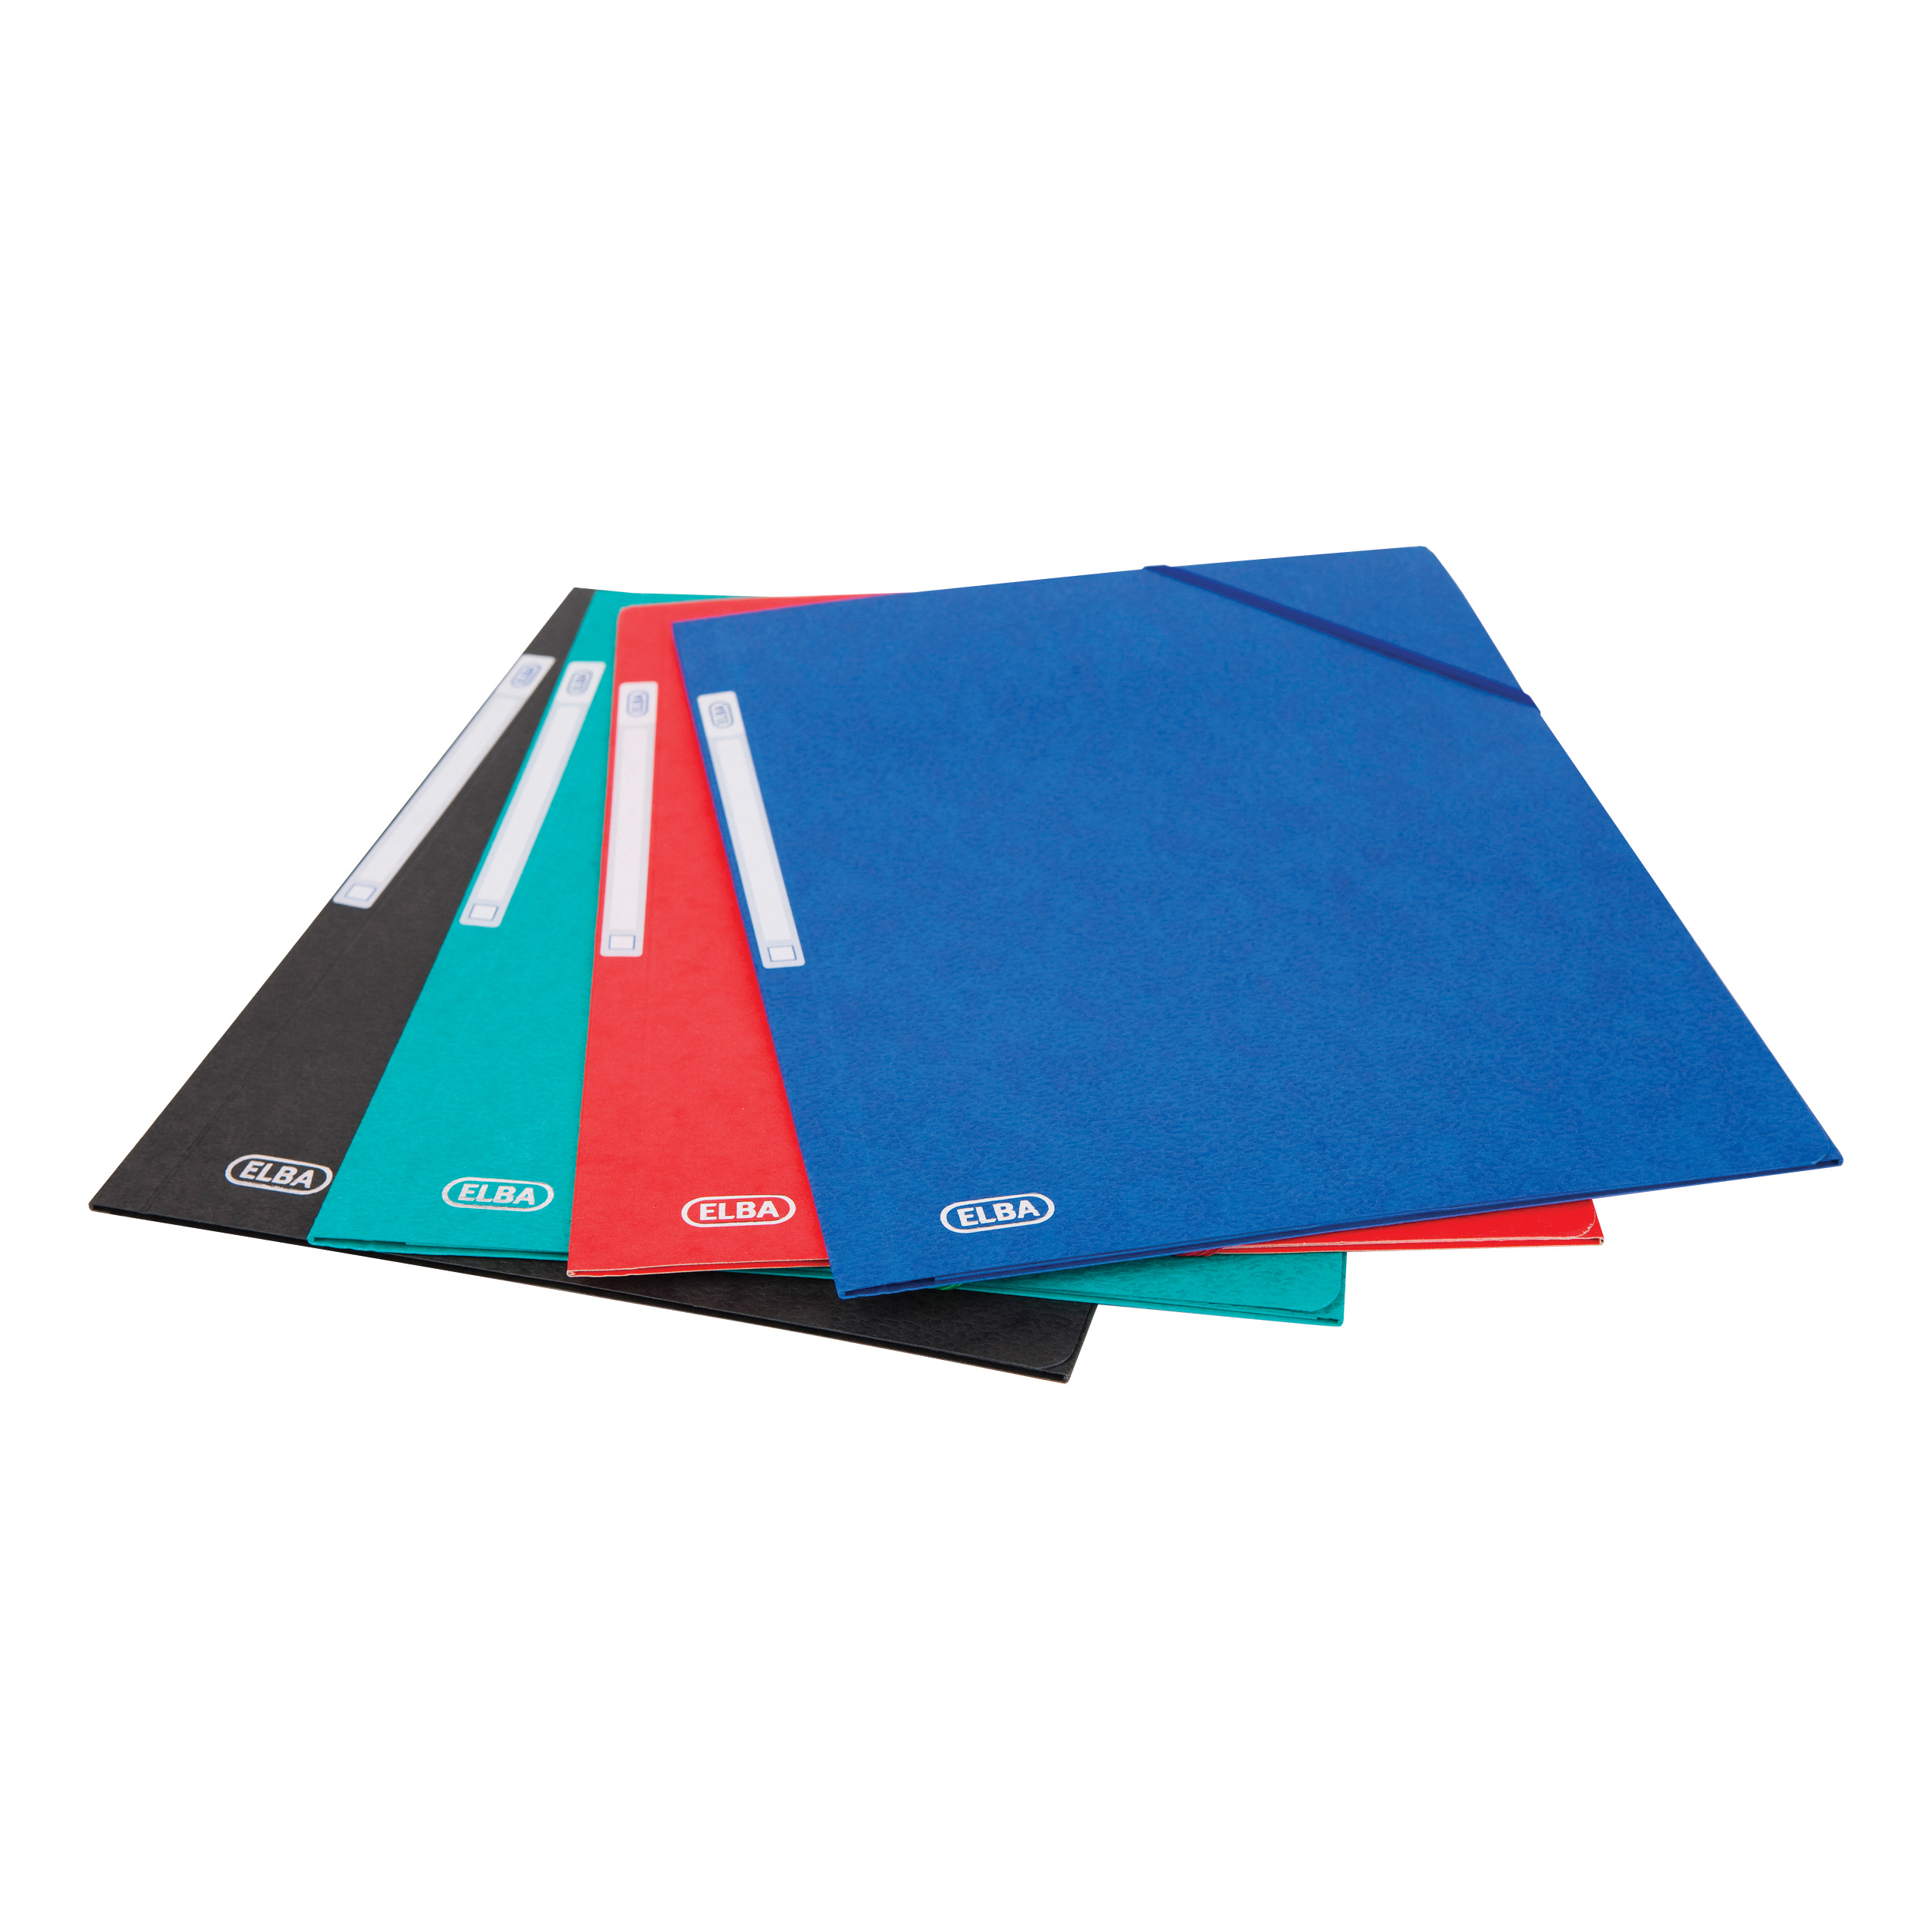 Oxford Folder Elasticated 3-Flap 450gsm A4 Assorted Ref 400114319 Pack 10